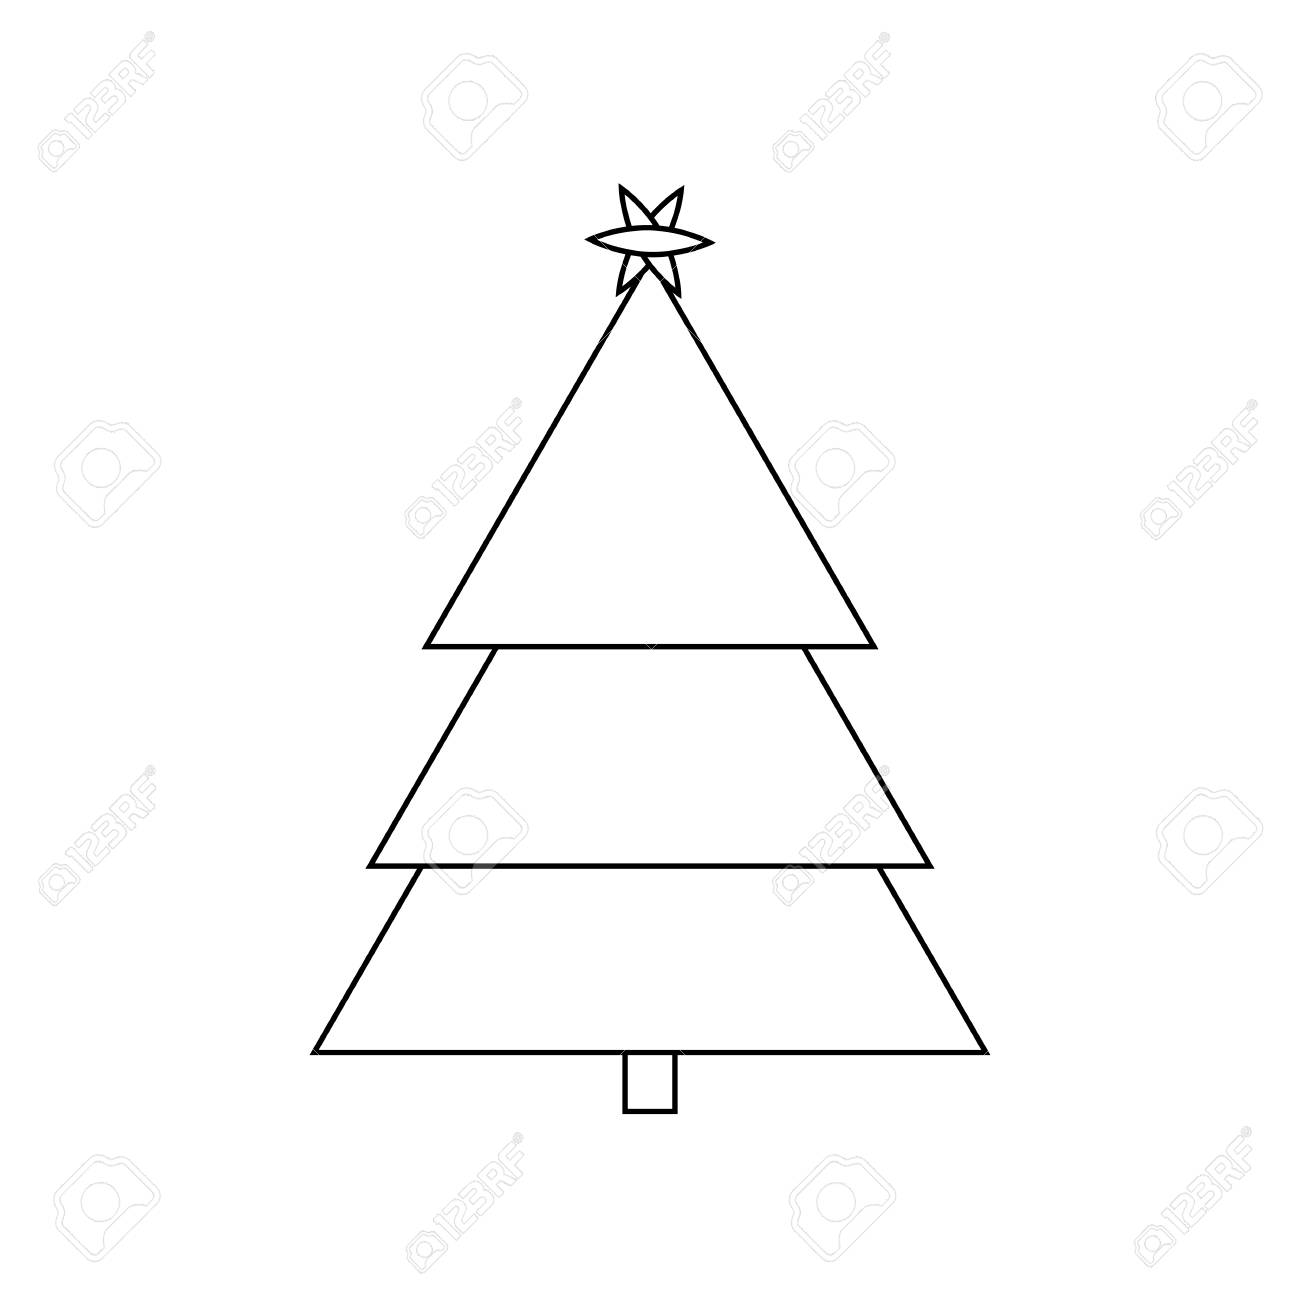 Christmas Tree Outline.Christmas Tree Outline Icon Symbol Design